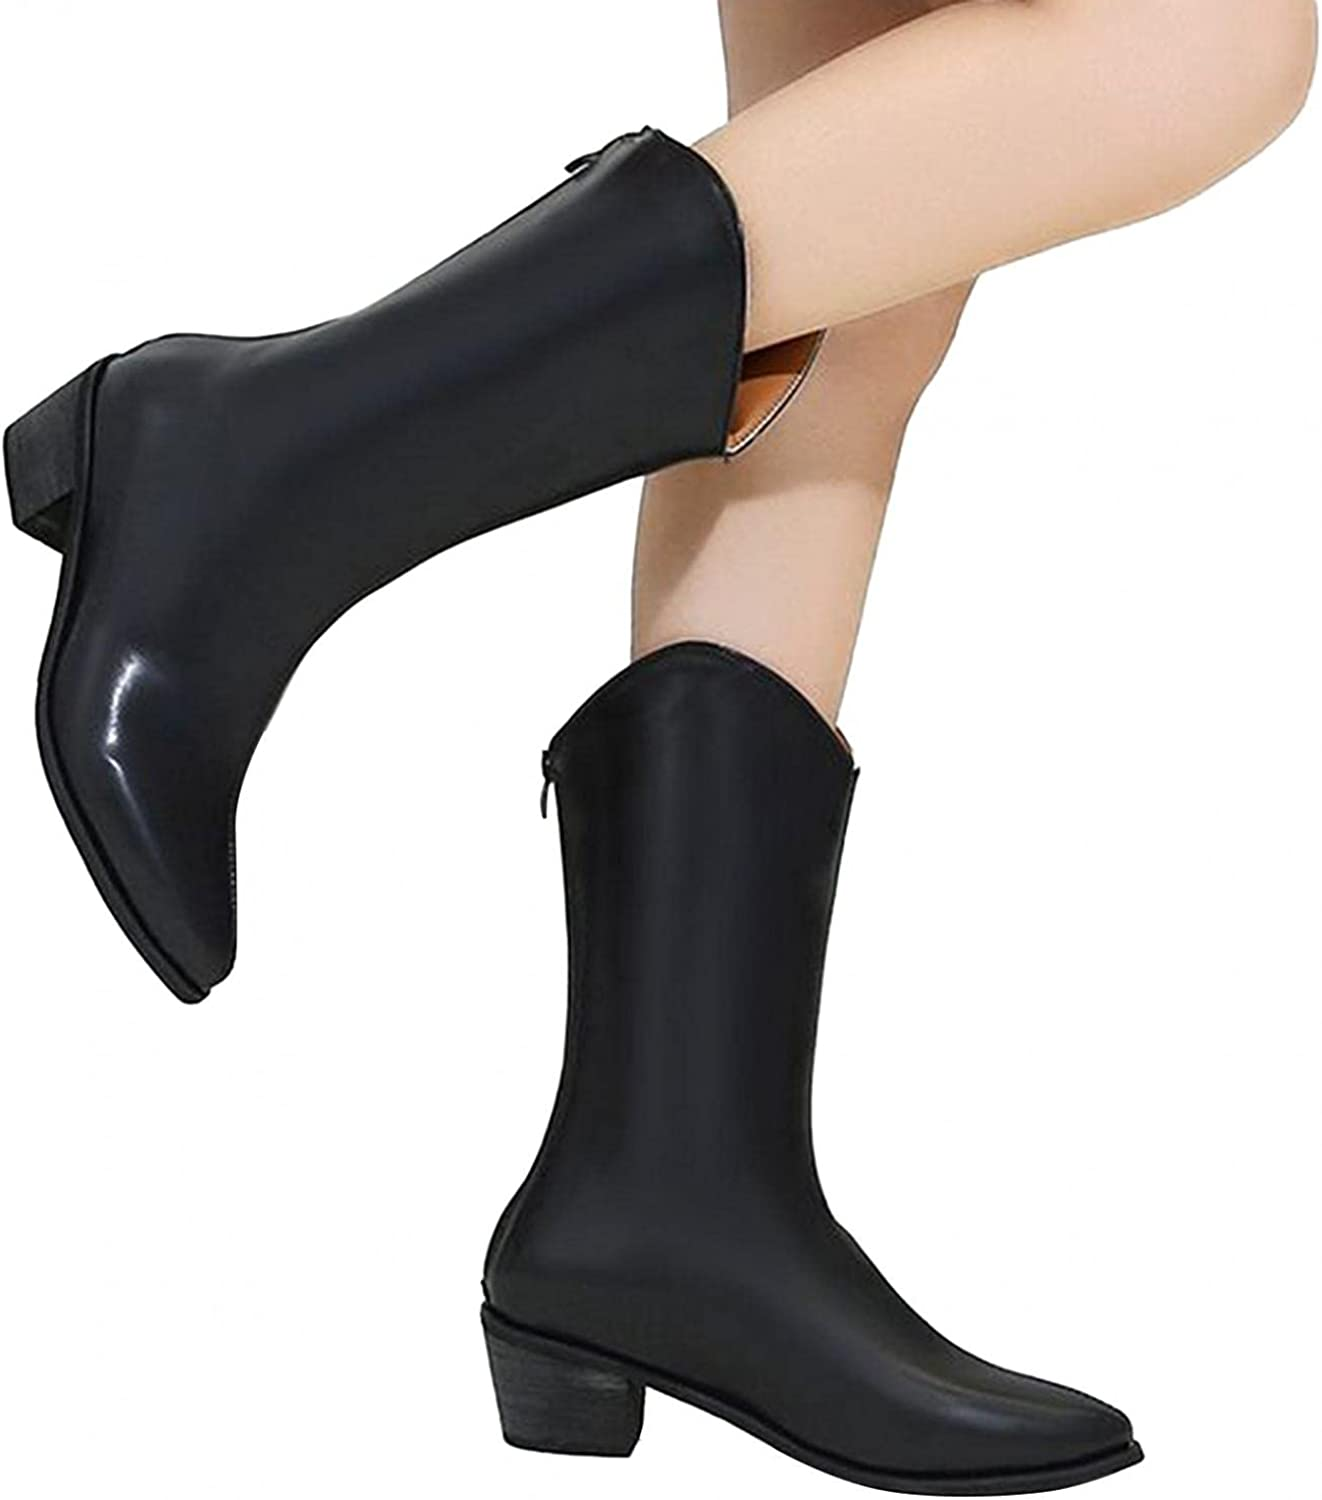 Hbeylia Dress Riding Boots For Women Fashion Casual Leather Pointed Toe Chunky Block Mid Heels Mid Calf Dressy Boots With Back Zipper Ladies Wide Calf Short Combat Cowboy Work Boots Party Favor